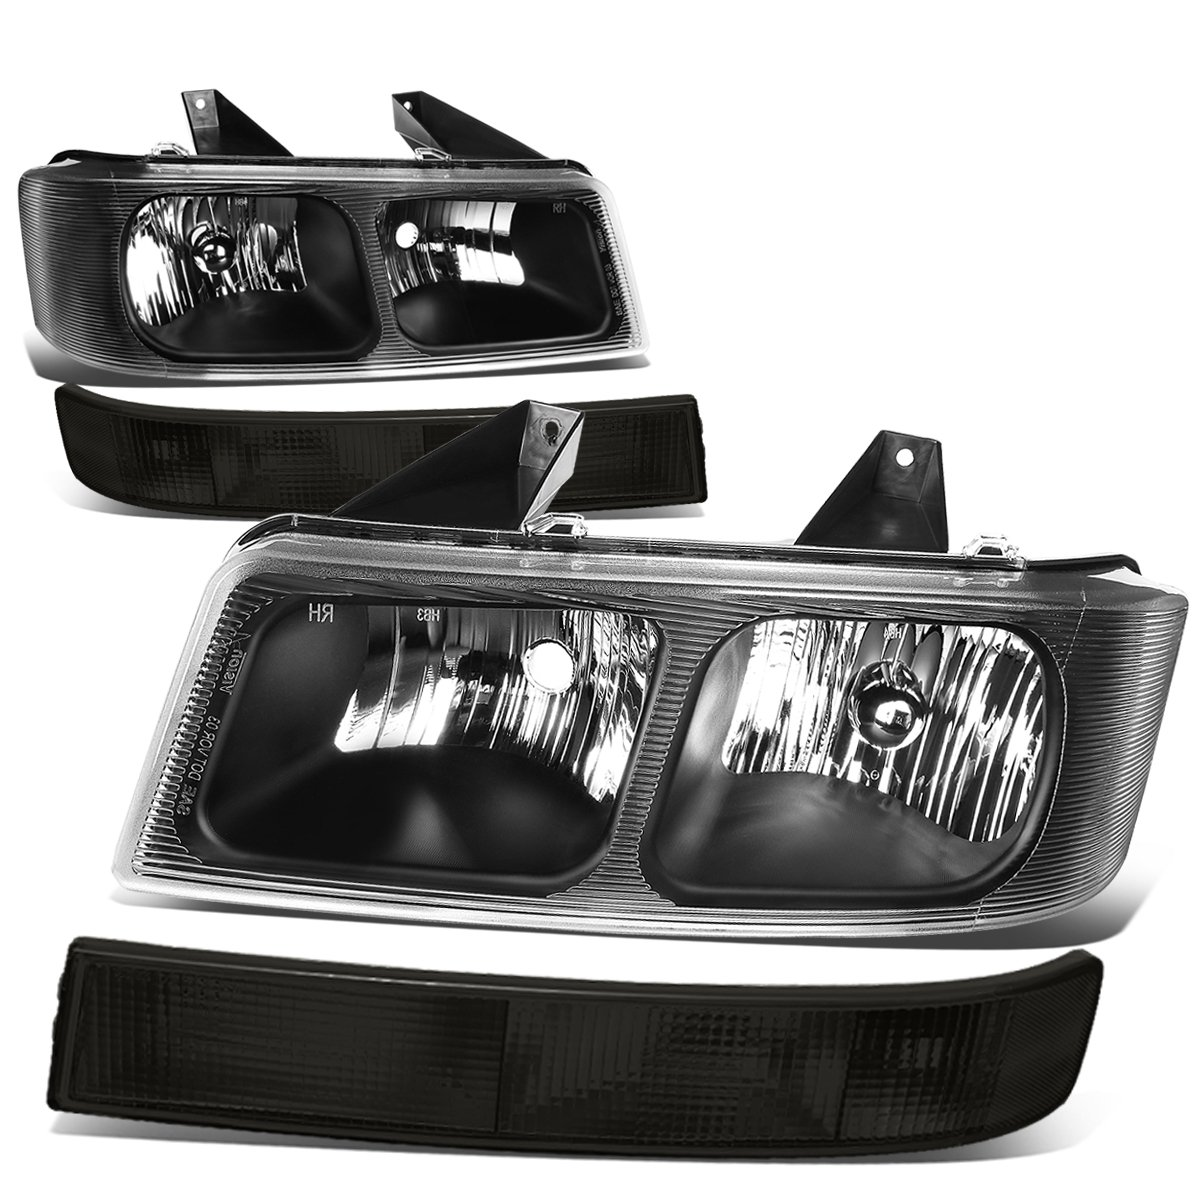 DNA Motoring HL-OH-111-BK-CL1-SM Headlight+Bumper Lamp Black//Smoked 03-17 GMC Savana